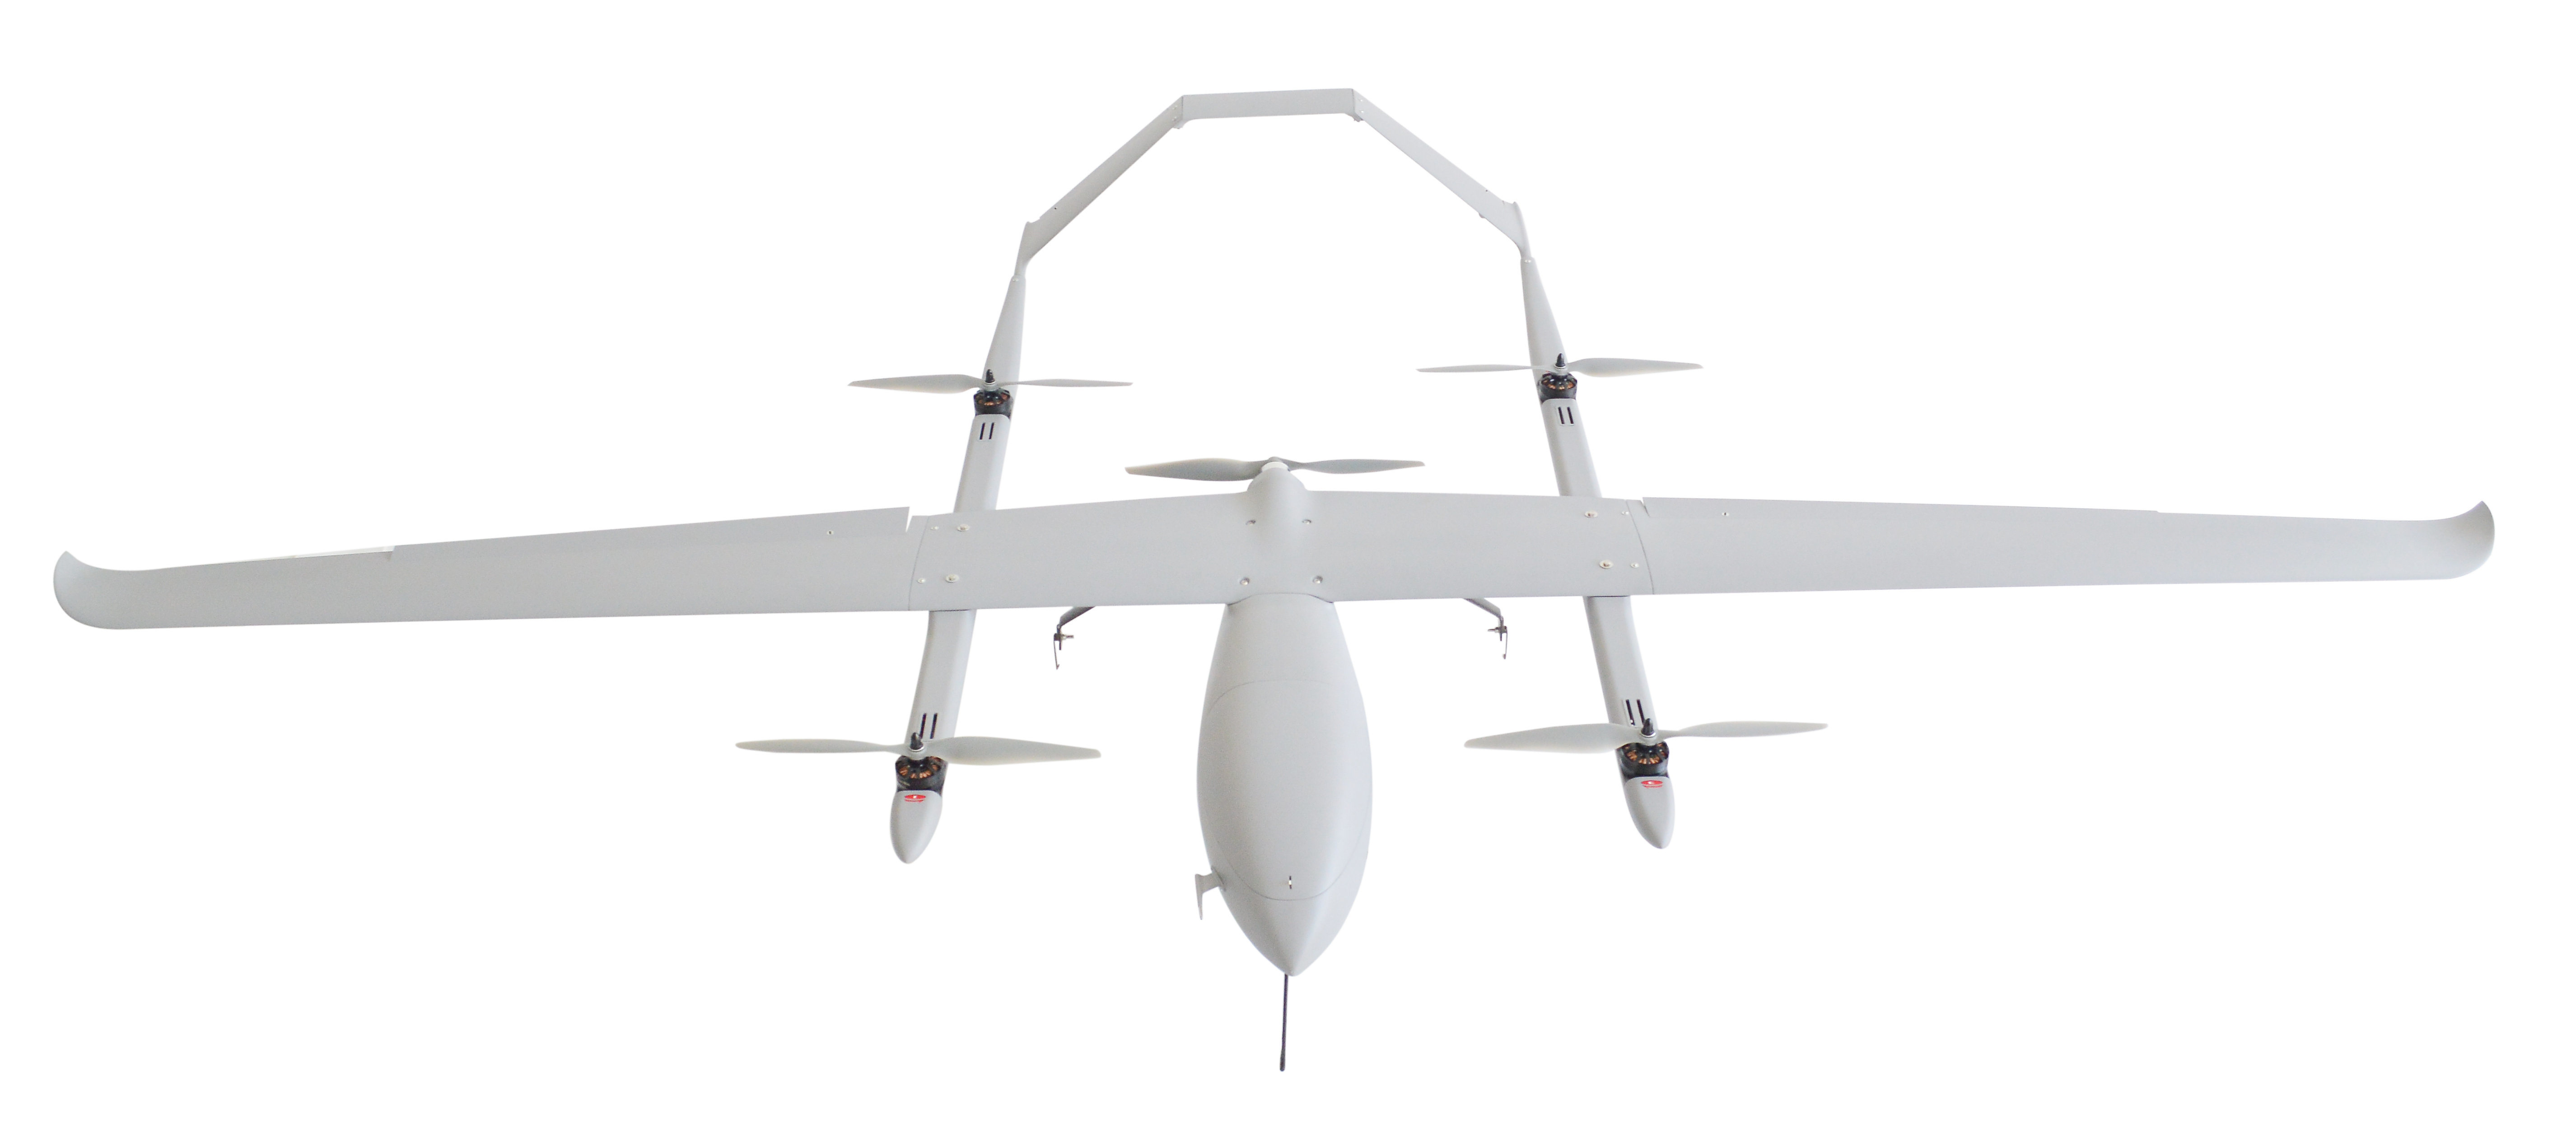 China Kwt-Gx350 Vtol Fixed-Wing Uav, Gas and Electric Hybrid and